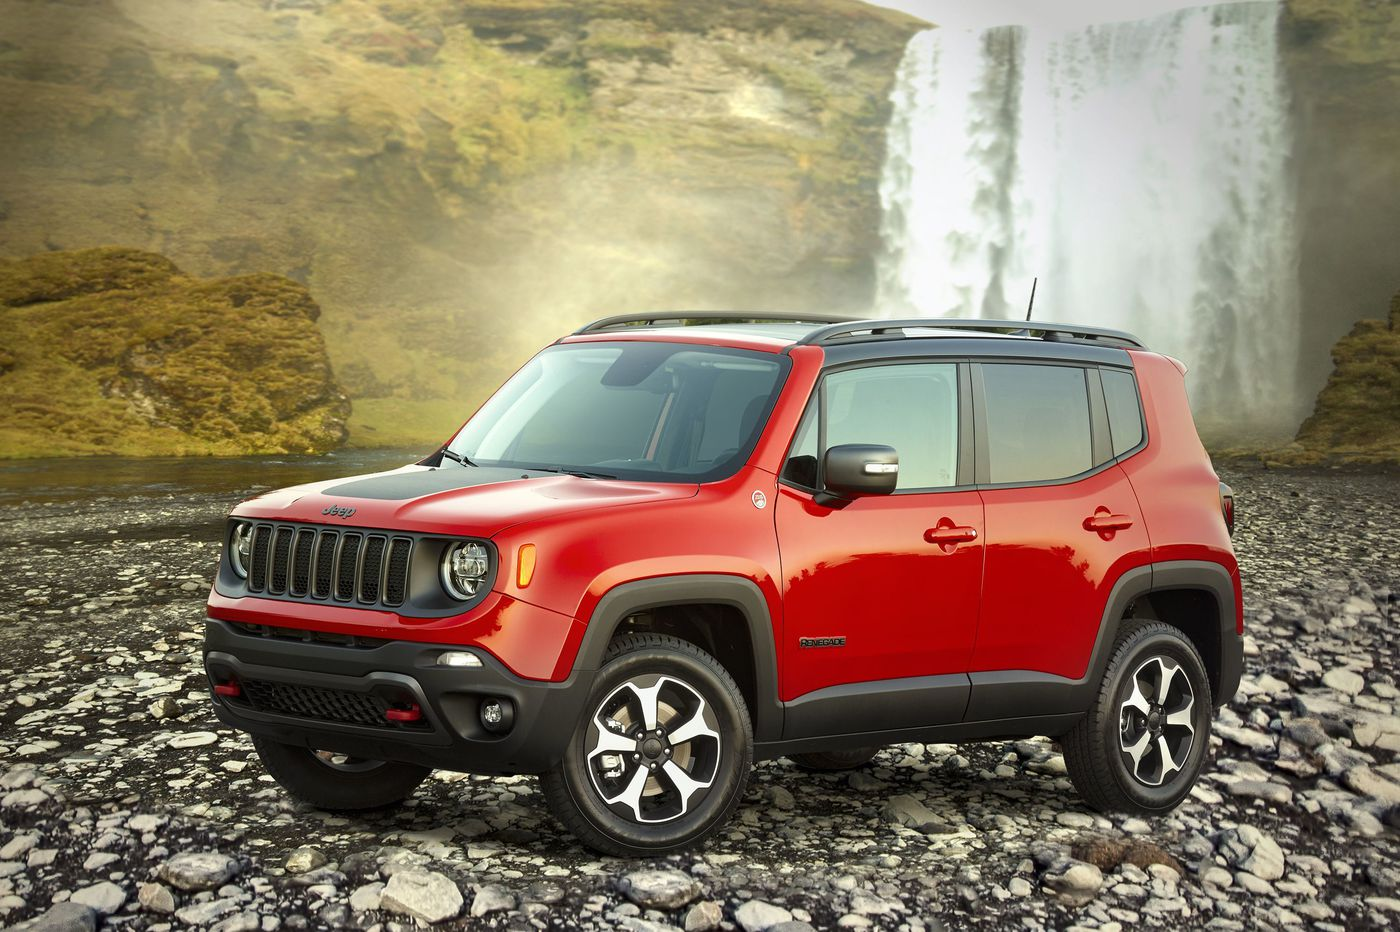 The Renegade is an Italian-flavored Jeep: A taste of Olive Garden